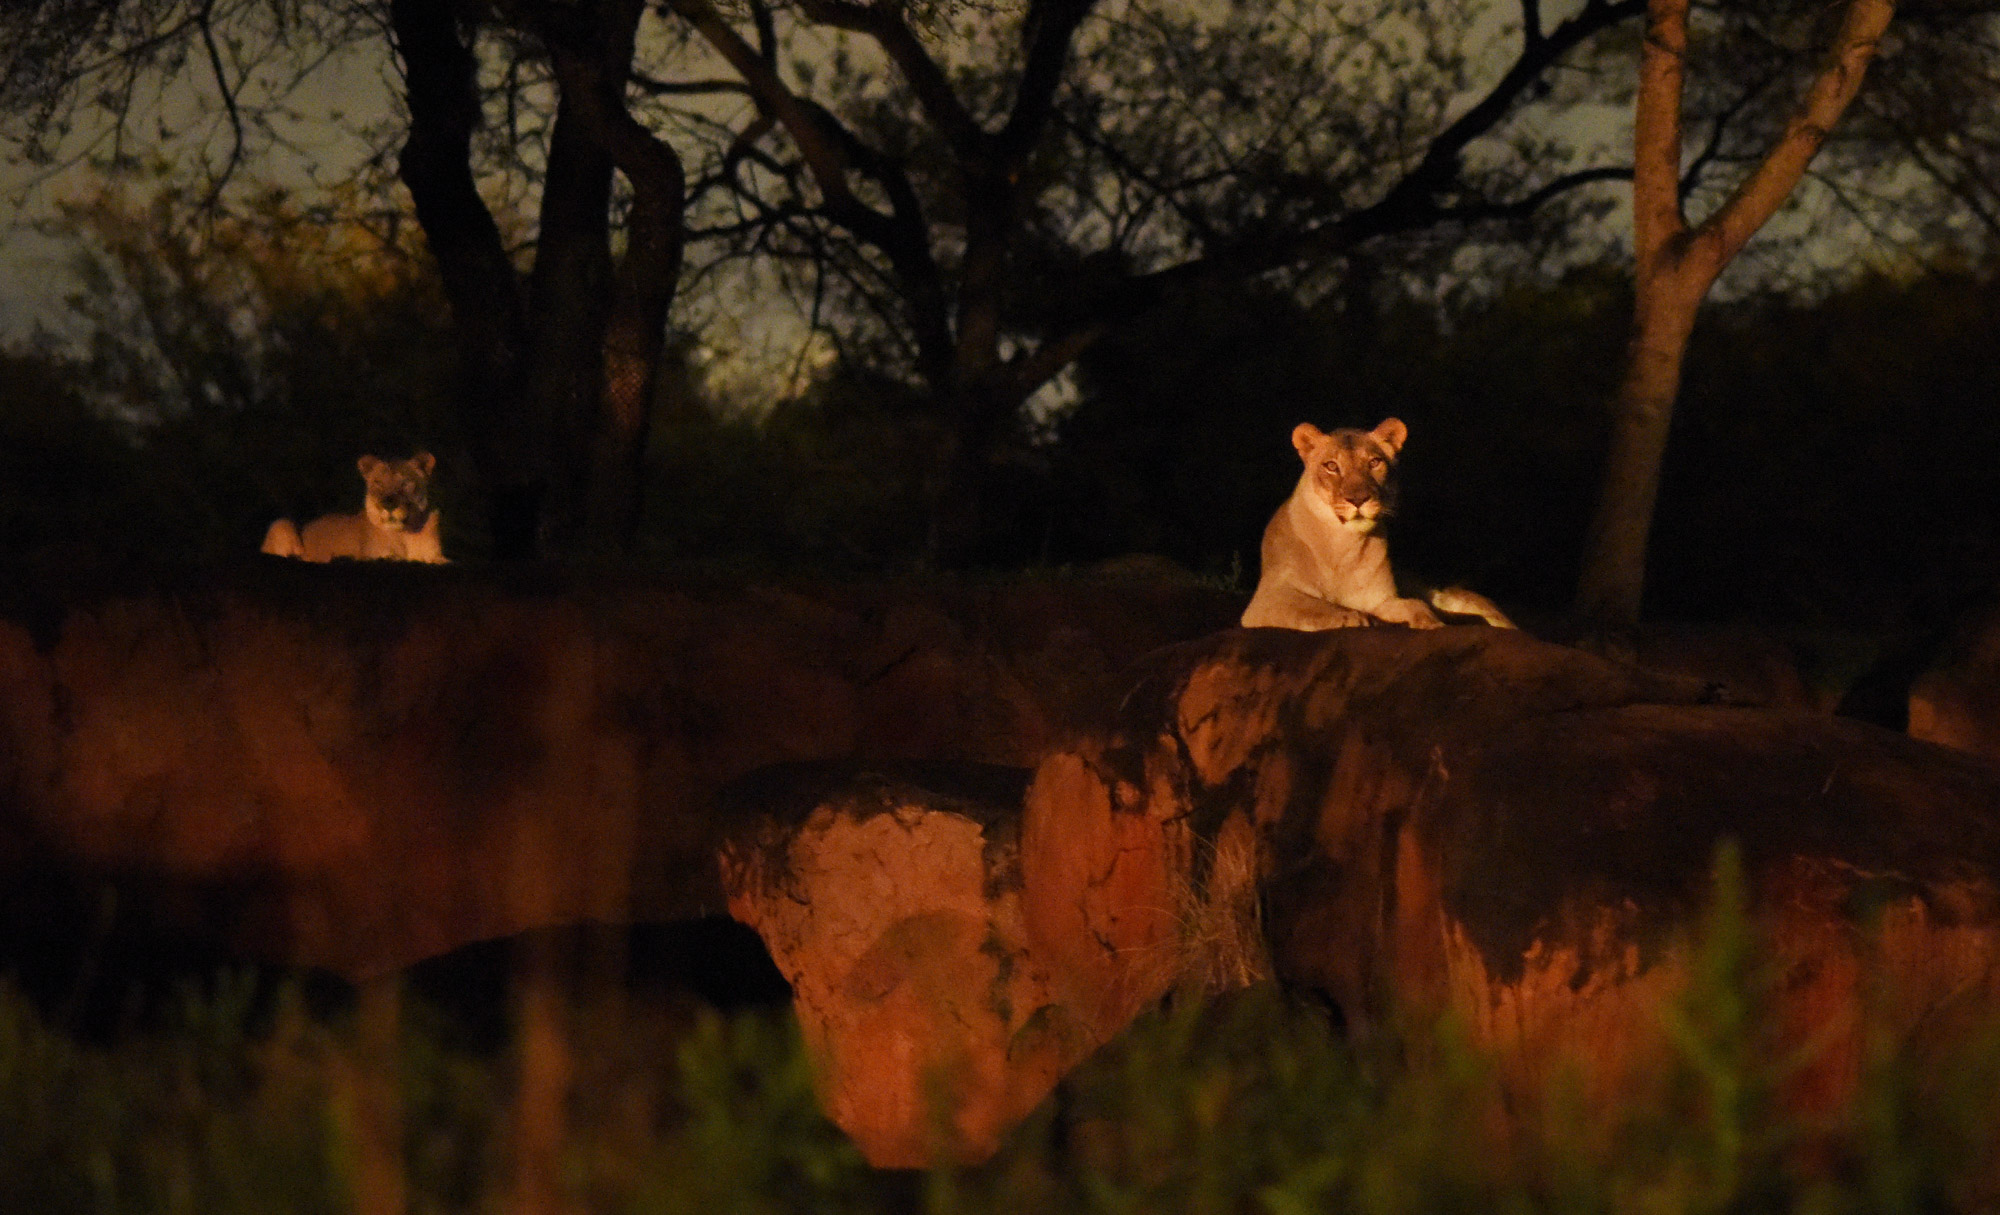 Each evening, the popular Kilimanjaro Safaris daytime experience is artfully bathed in the glow of sunset with special lighting allowing guests to explore this Disney's Animal Kingdom attraction well into the night. During the expedition, guests can now encounter the nighttime behavior of the wildlife and better tune in to the unique vocalization of the animals. (Todd Anderson, photographer)